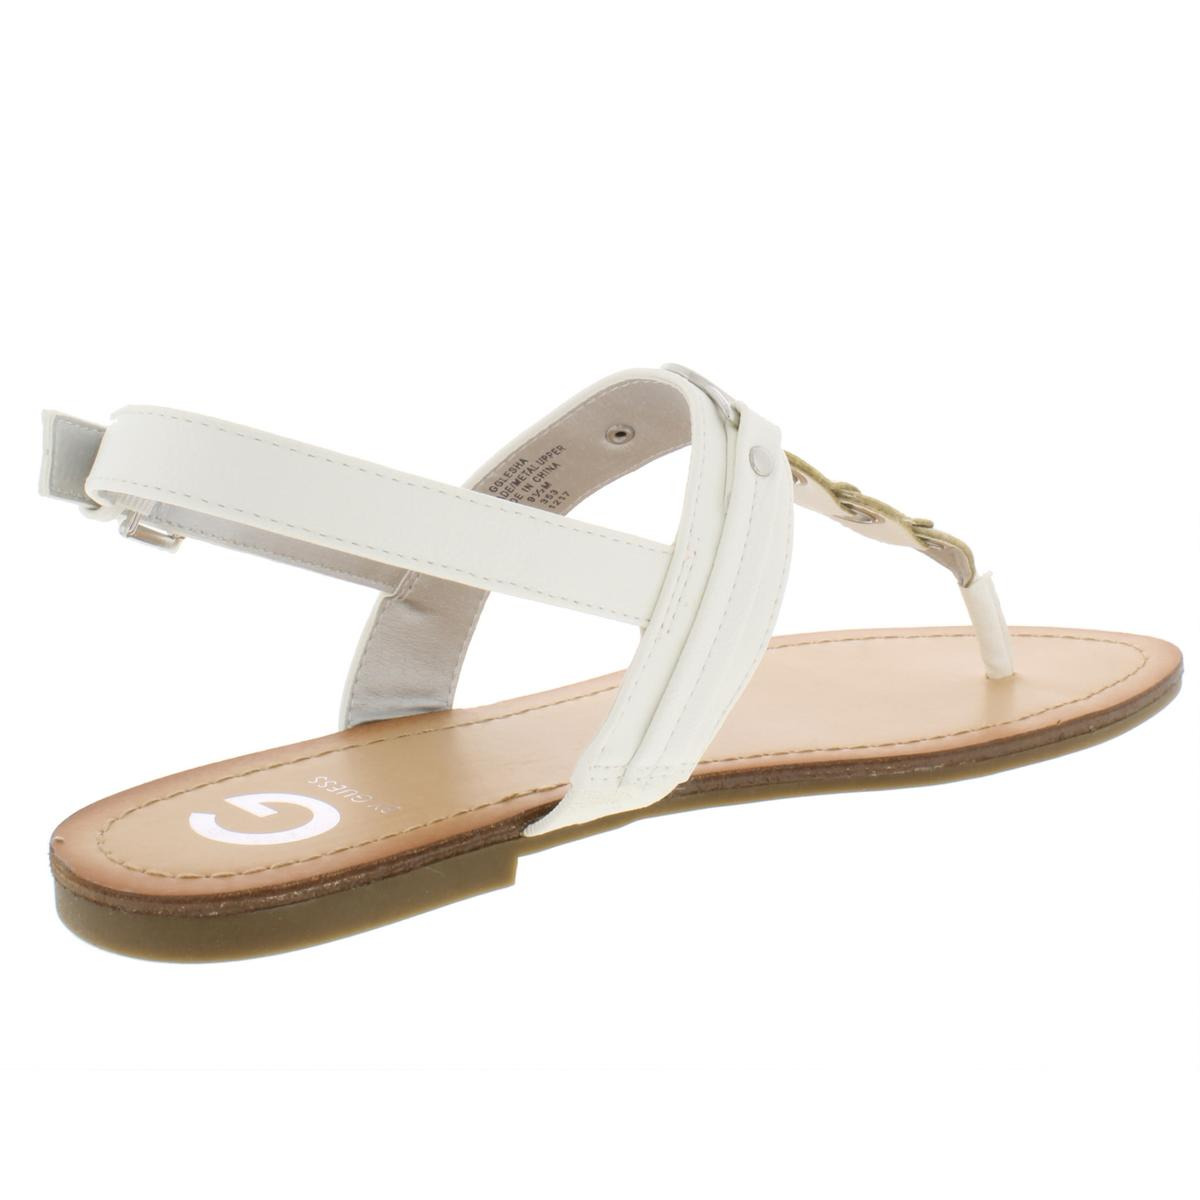 G-by-Guess-Womens-Lesha-Faux-Leather-T-Strap-Flat-Sandals-Shoes-BHFO-5291 thumbnail 4